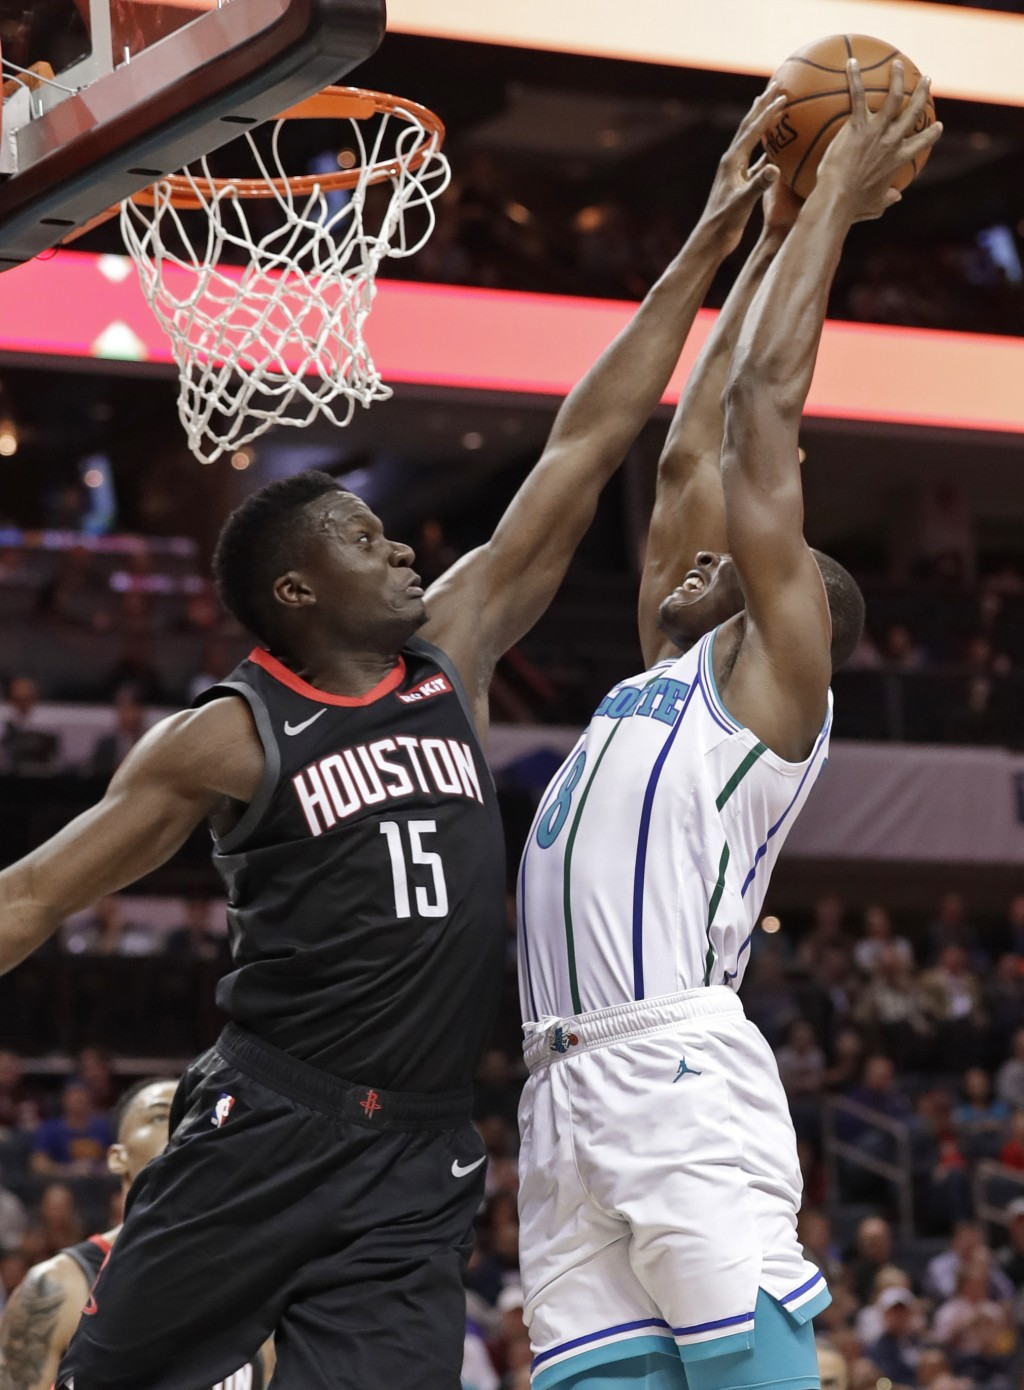 Houston Rockets' Clint Capela (15) blocks a shot by Charlotte Hornets' Bismack Biyombo (8) during the first half of an NBA basketball game in Charlott